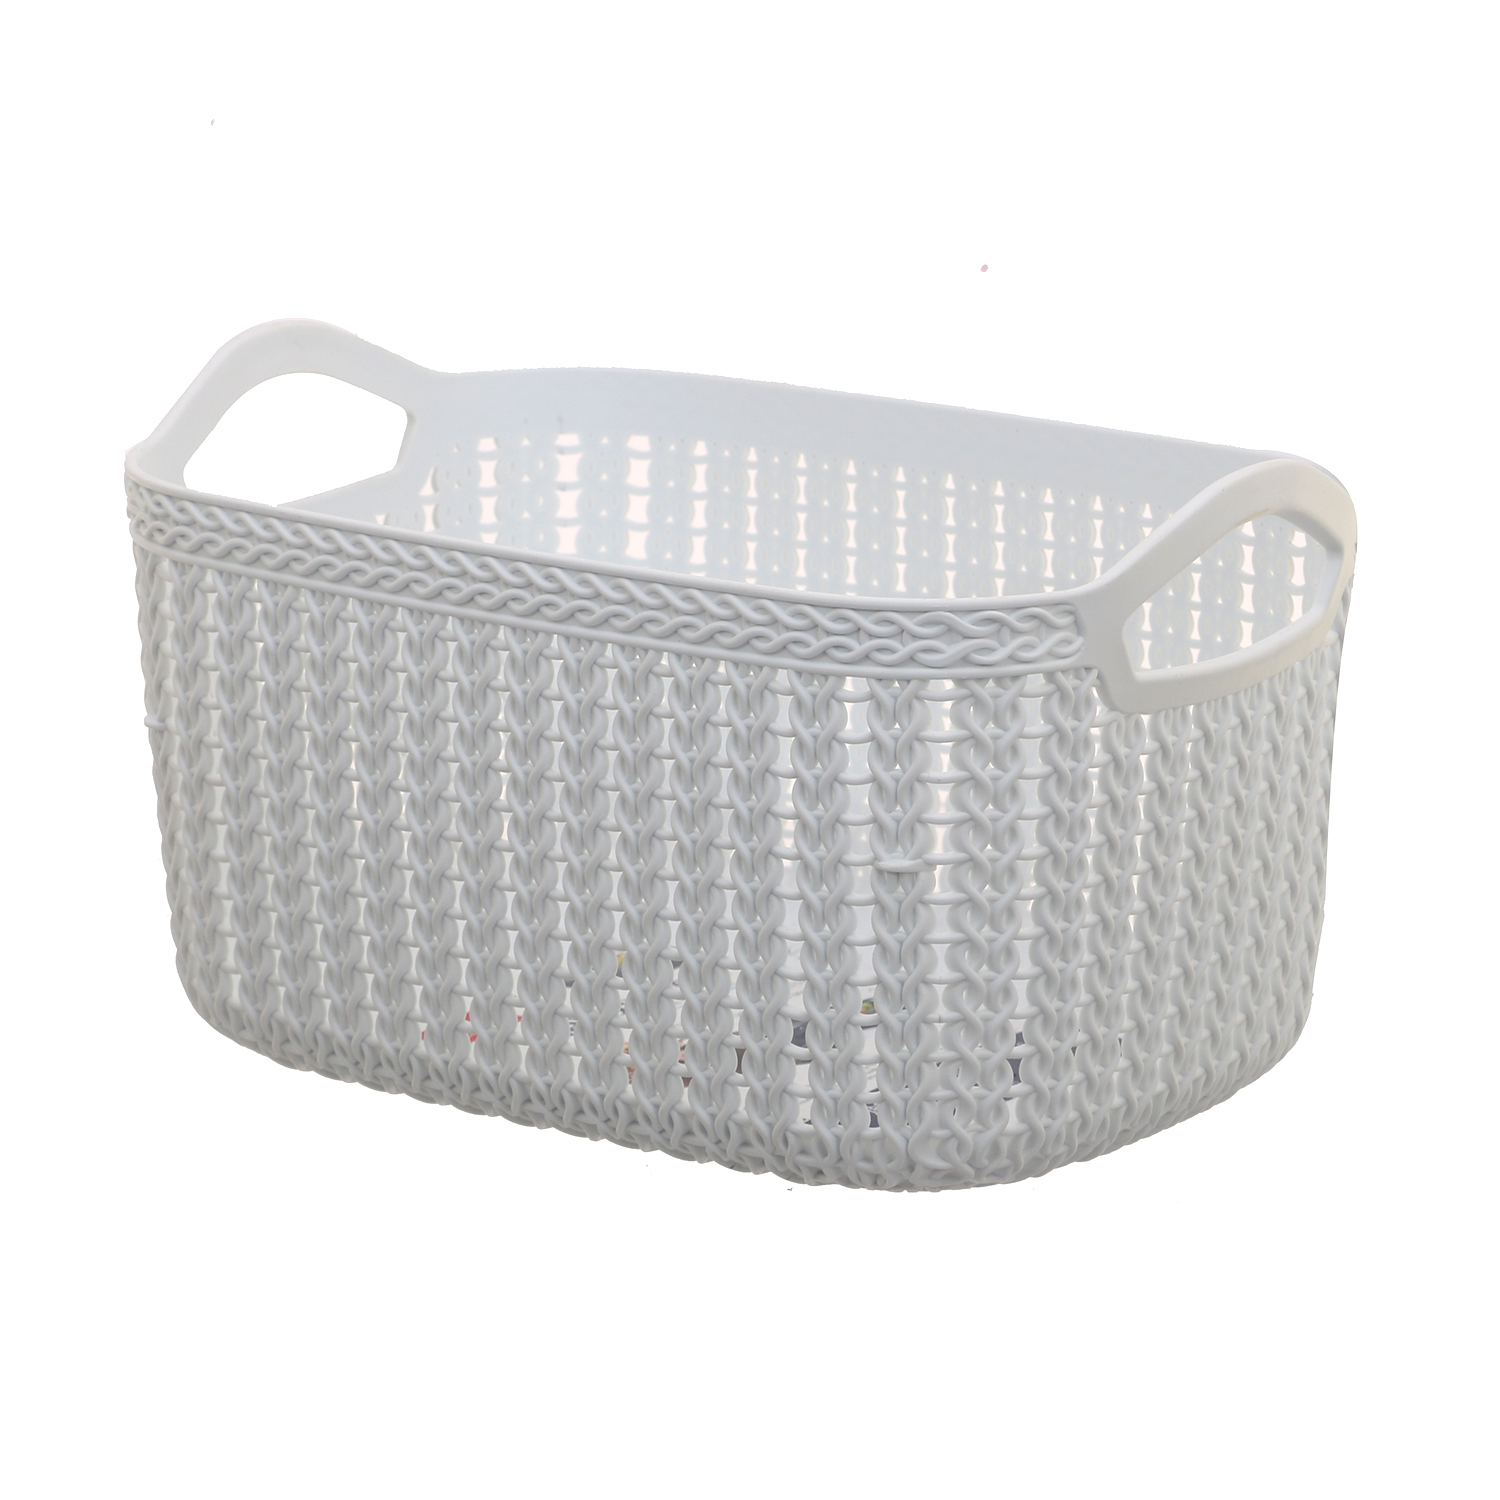 Kuber Industries Unbreakable Plastic 4 Pieces Multipurpose Medium Size Flexible Storage Baskets/Fruit Vegetable Kitchen Organizer with Handles (White) - CTKTC30631